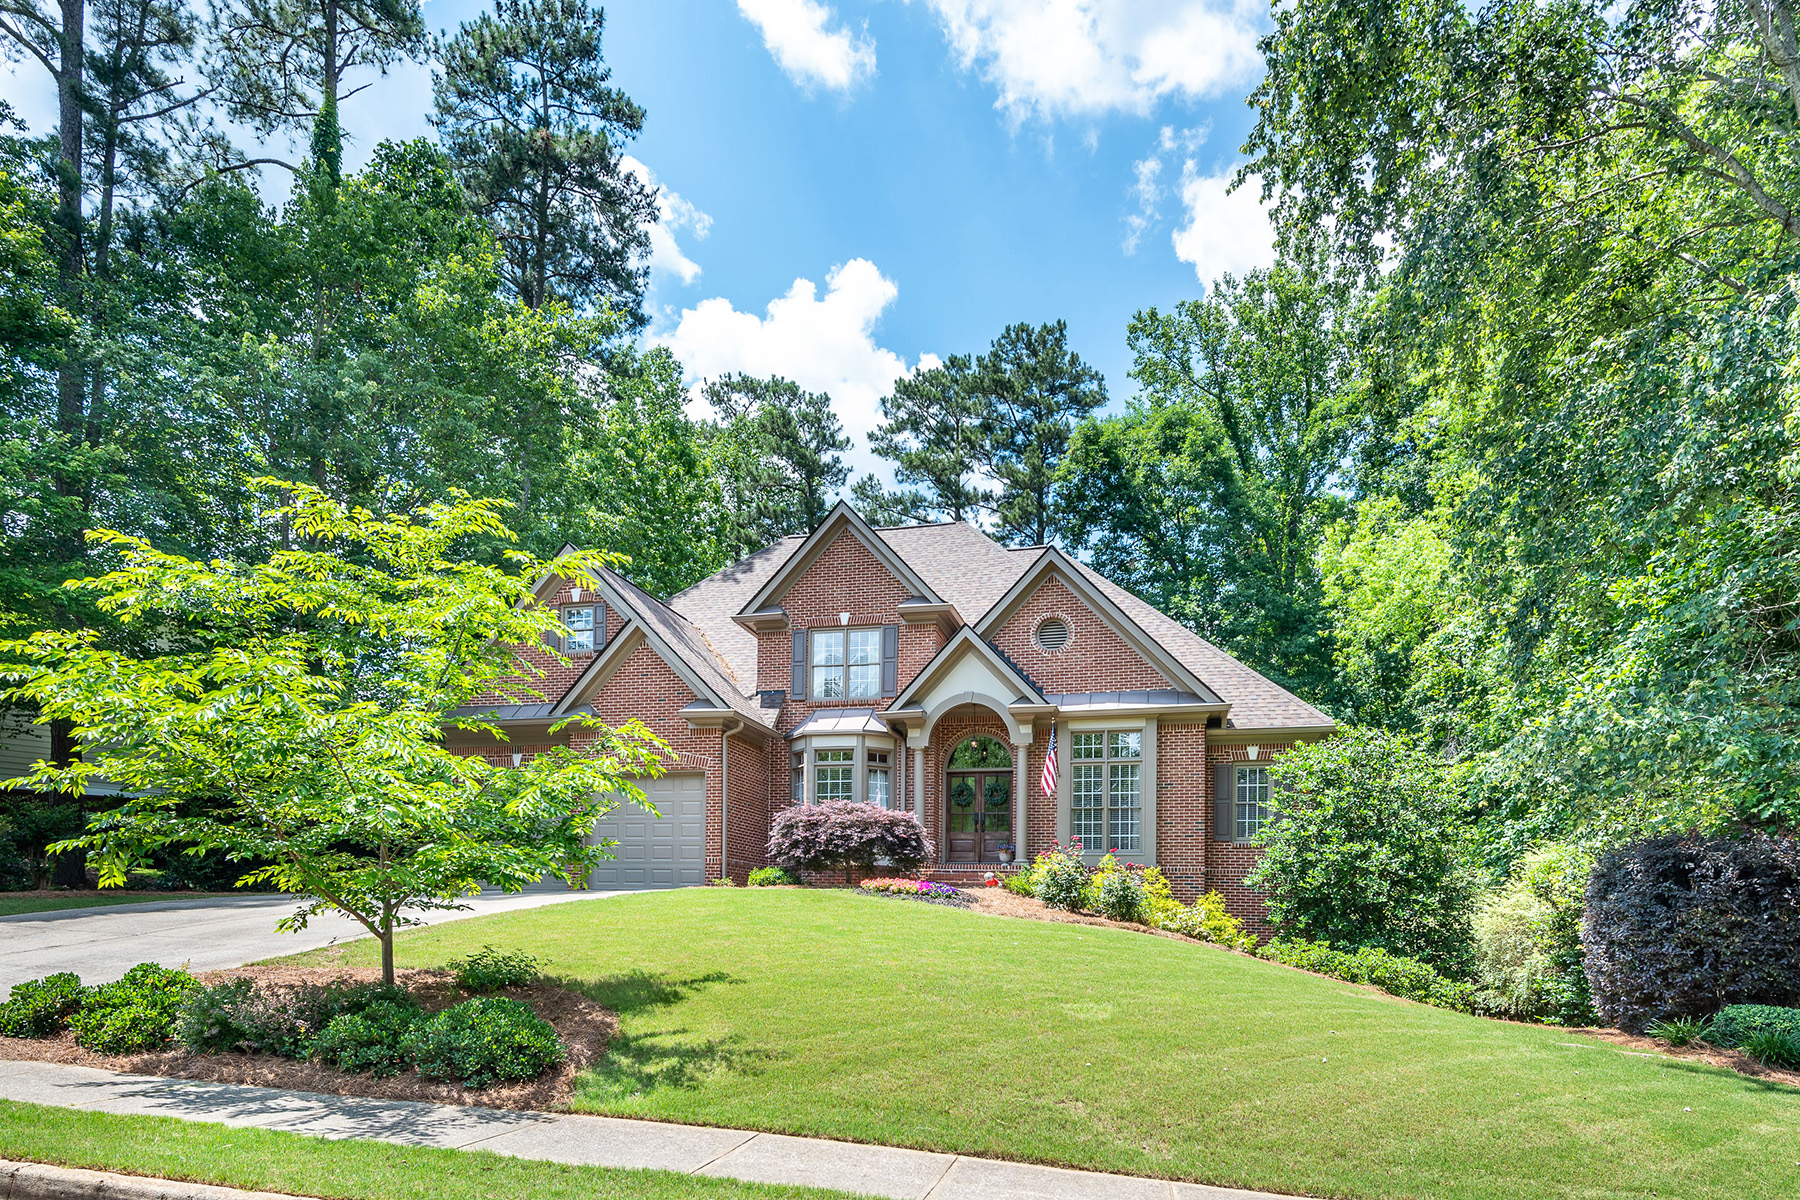 Single Family Homes for Sale at Beautiful Home in Sought-After Browns Farm 603 Owl Creek Drive Powder Springs, Georgia 30127 United States